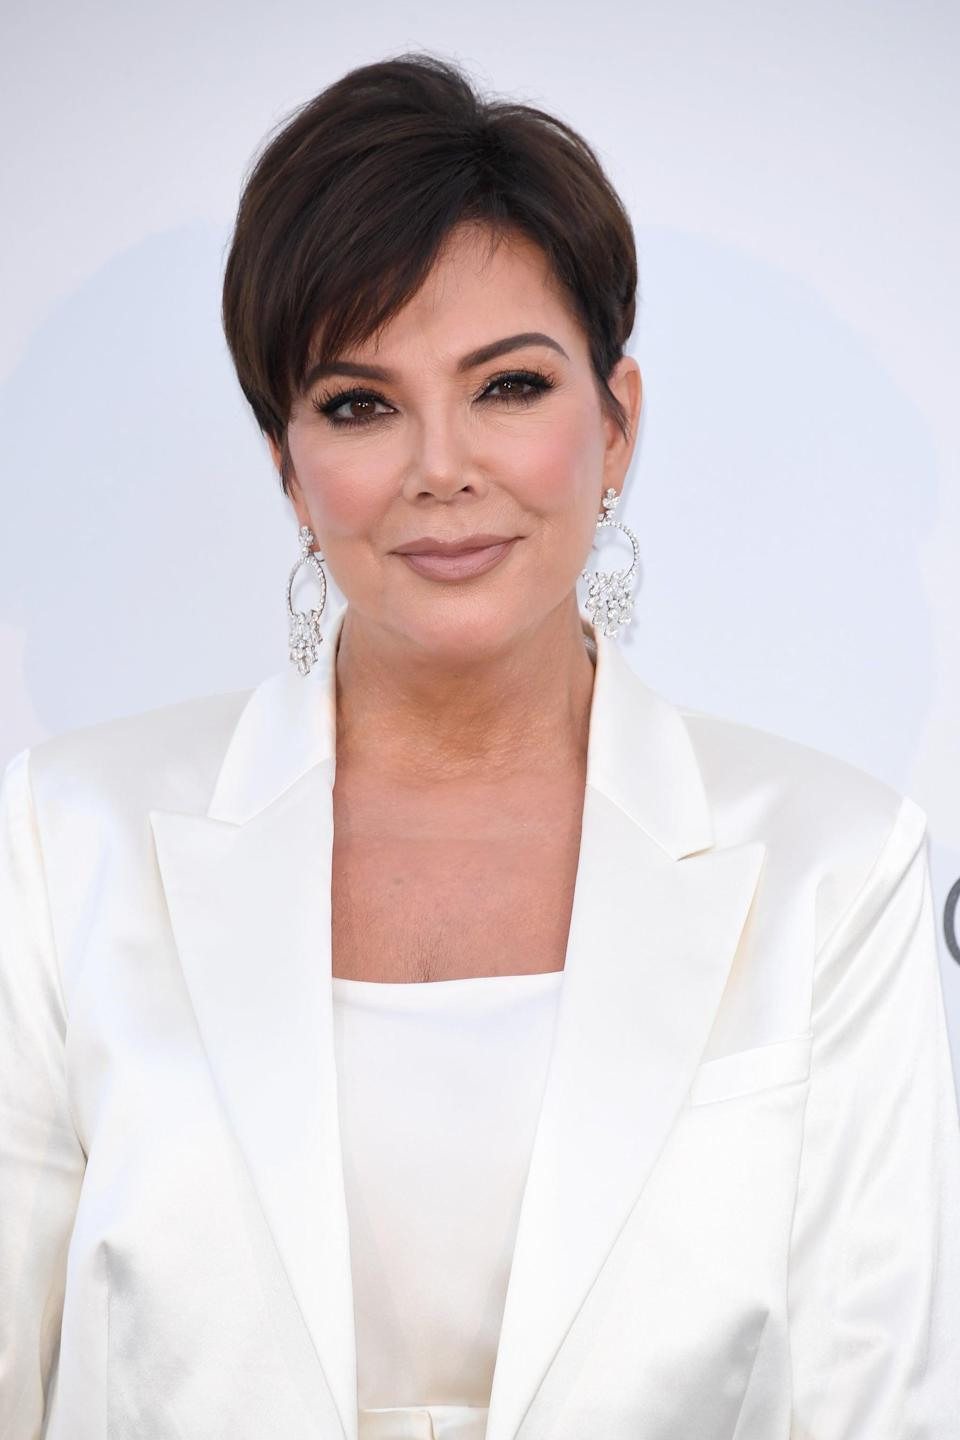 """<p>The matriarch of the Kardashian-Jenner clan may be joining the beauty game with her own skincare line. In February 2021, <a href=""""https://www.popsugar.com/beauty/kris-jenner-beauty-brand-trademark-48178699"""" class=""""link rapid-noclick-resp"""" rel=""""nofollow noopener"""" target=""""_blank"""" data-ylk=""""slk:Jenner Communications reportedly applied for various trademarks"""">Jenner Communications reportedly applied for various trademarks</a>, and search results via the United States Patent and Trademark Office currently show pending trademarks for <a href=""""https://uspto.report/TM/90523713"""" class=""""link rapid-noclick-resp"""" rel=""""nofollow noopener"""" target=""""_blank"""" data-ylk=""""slk:Kris Jenner Beauty"""">Kris Jenner Beauty</a>, <a href=""""https://uspto.report/TM/90523798"""" class=""""link rapid-noclick-resp"""" rel=""""nofollow noopener"""" target=""""_blank"""" data-ylk=""""slk:Kris Jenner Skin"""">Kris Jenner Skin</a>, and <a href=""""https://uspto.report/TM/90523893"""" class=""""link rapid-noclick-resp"""" rel=""""nofollow noopener"""" target=""""_blank"""" data-ylk=""""slk:Kris Jenner Skincare"""">Kris Jenner Skincare</a>. However, Kris has yet to confirm the rumors herself, so fans will have to wait and see if this potential endeavor pans out. </p>"""